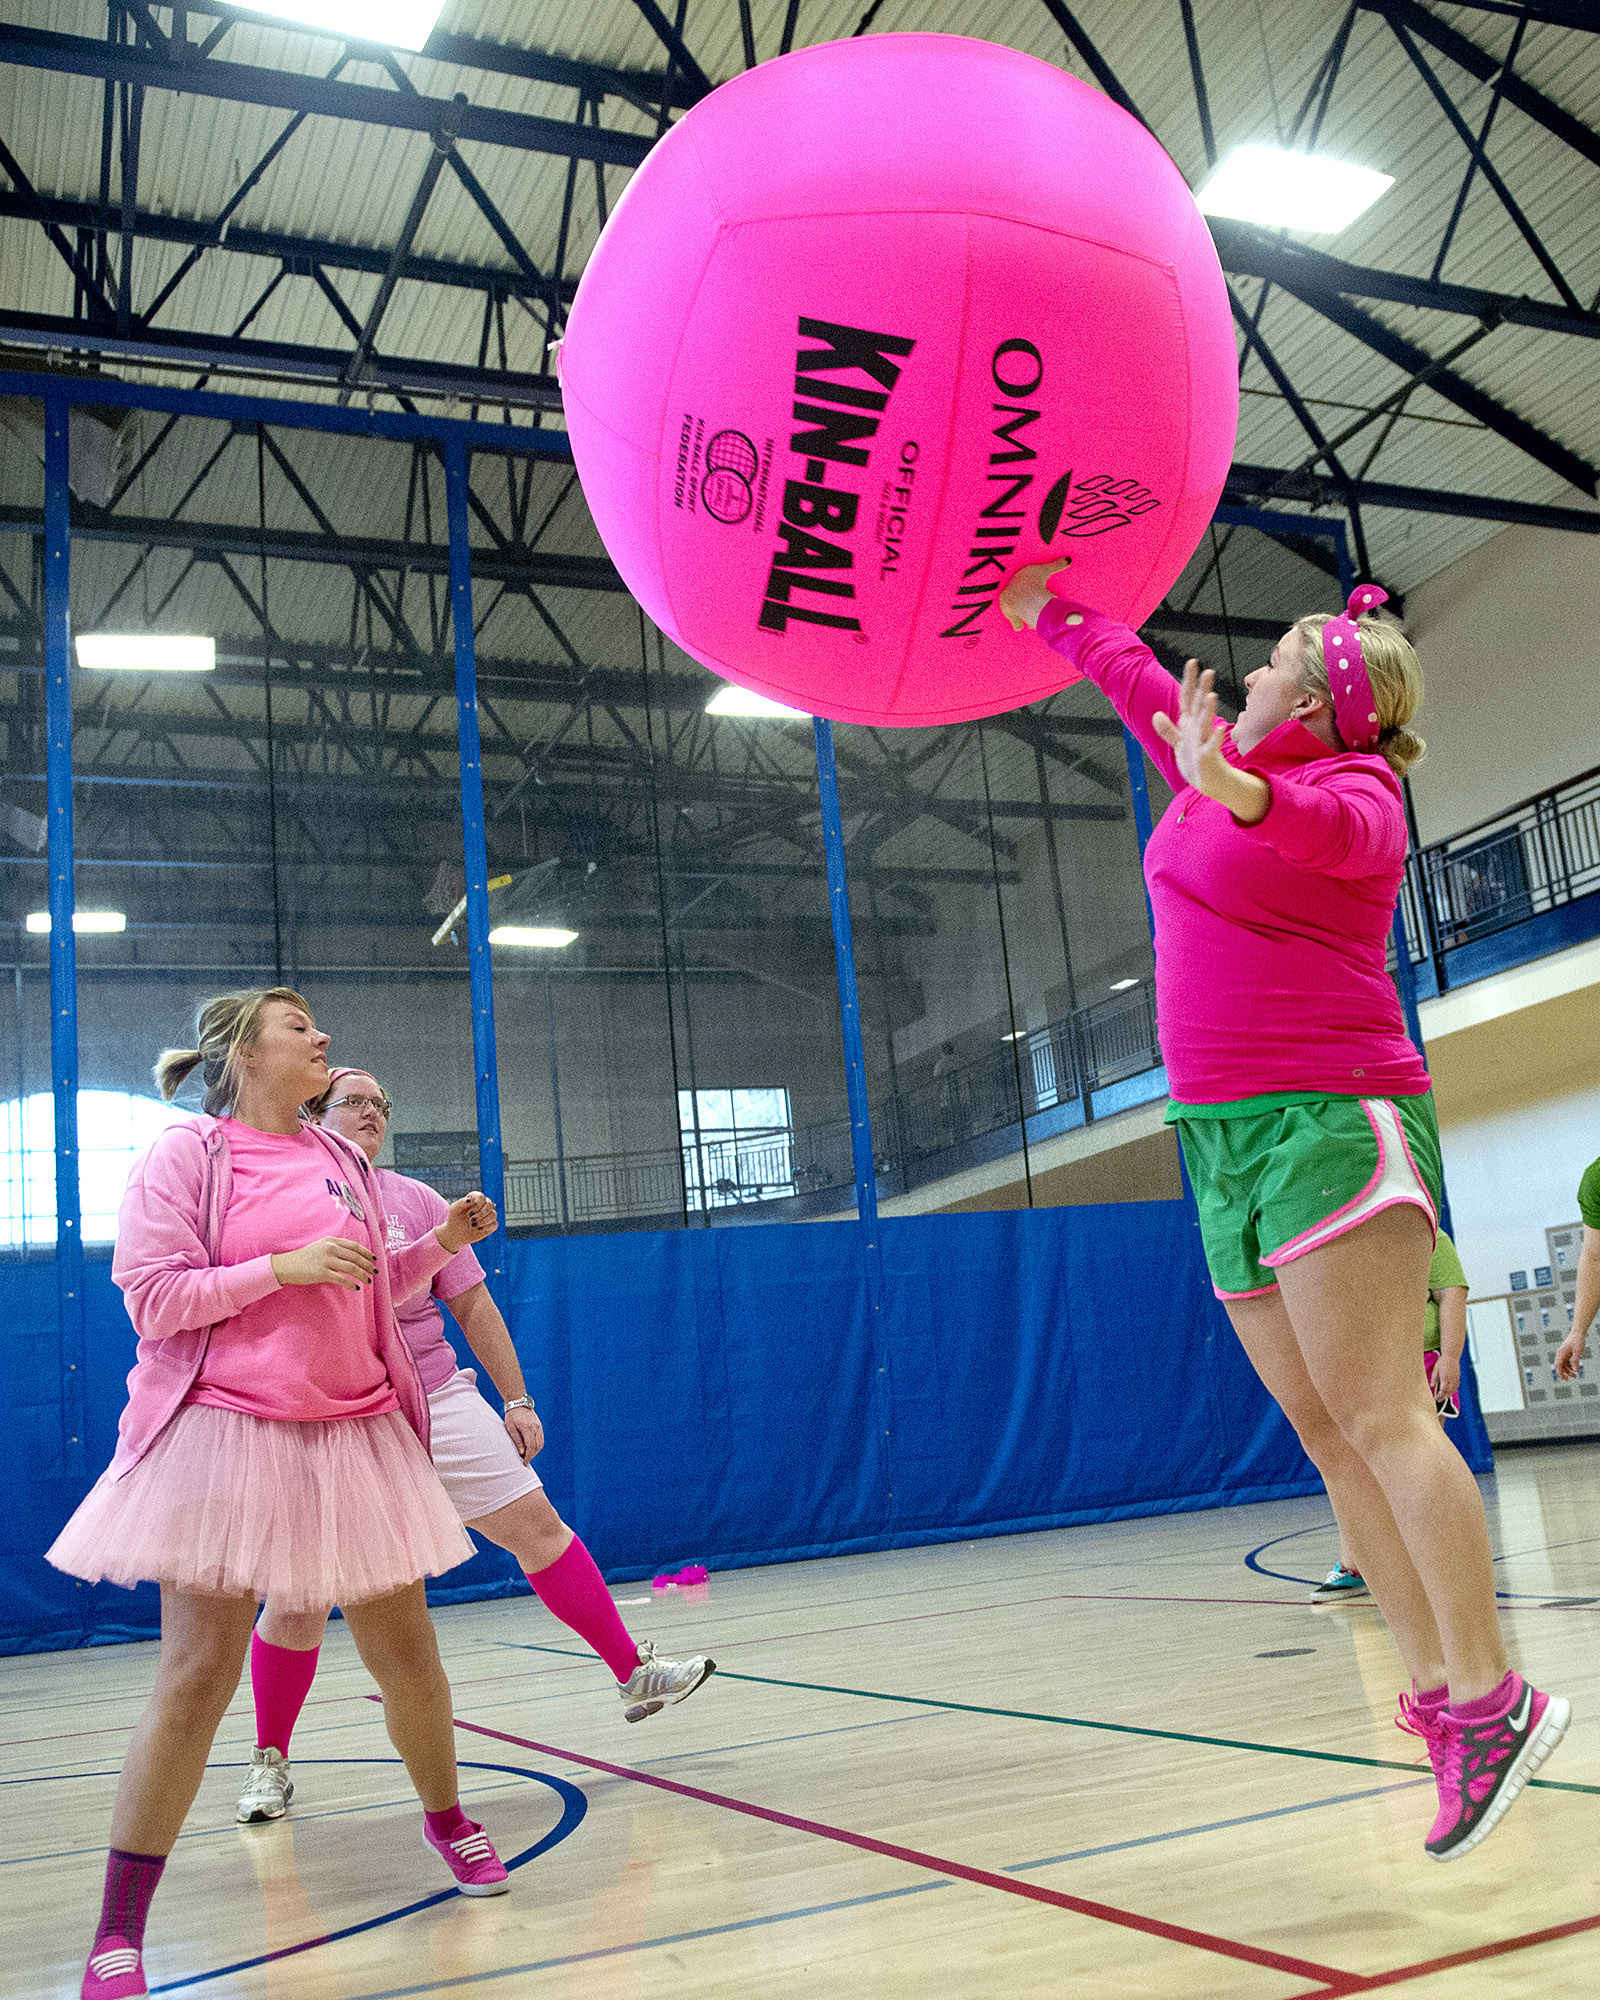 The Big Pink Volleyball Tournament returns to the UCO Wellness Center Feb. 24-27. Teams of 6-10 players may register online at www.uco.edu/bigpink through 5 p.m. Feb. 19. All proceeds benefit Susan G. Komen Central and Western Oklahoma.